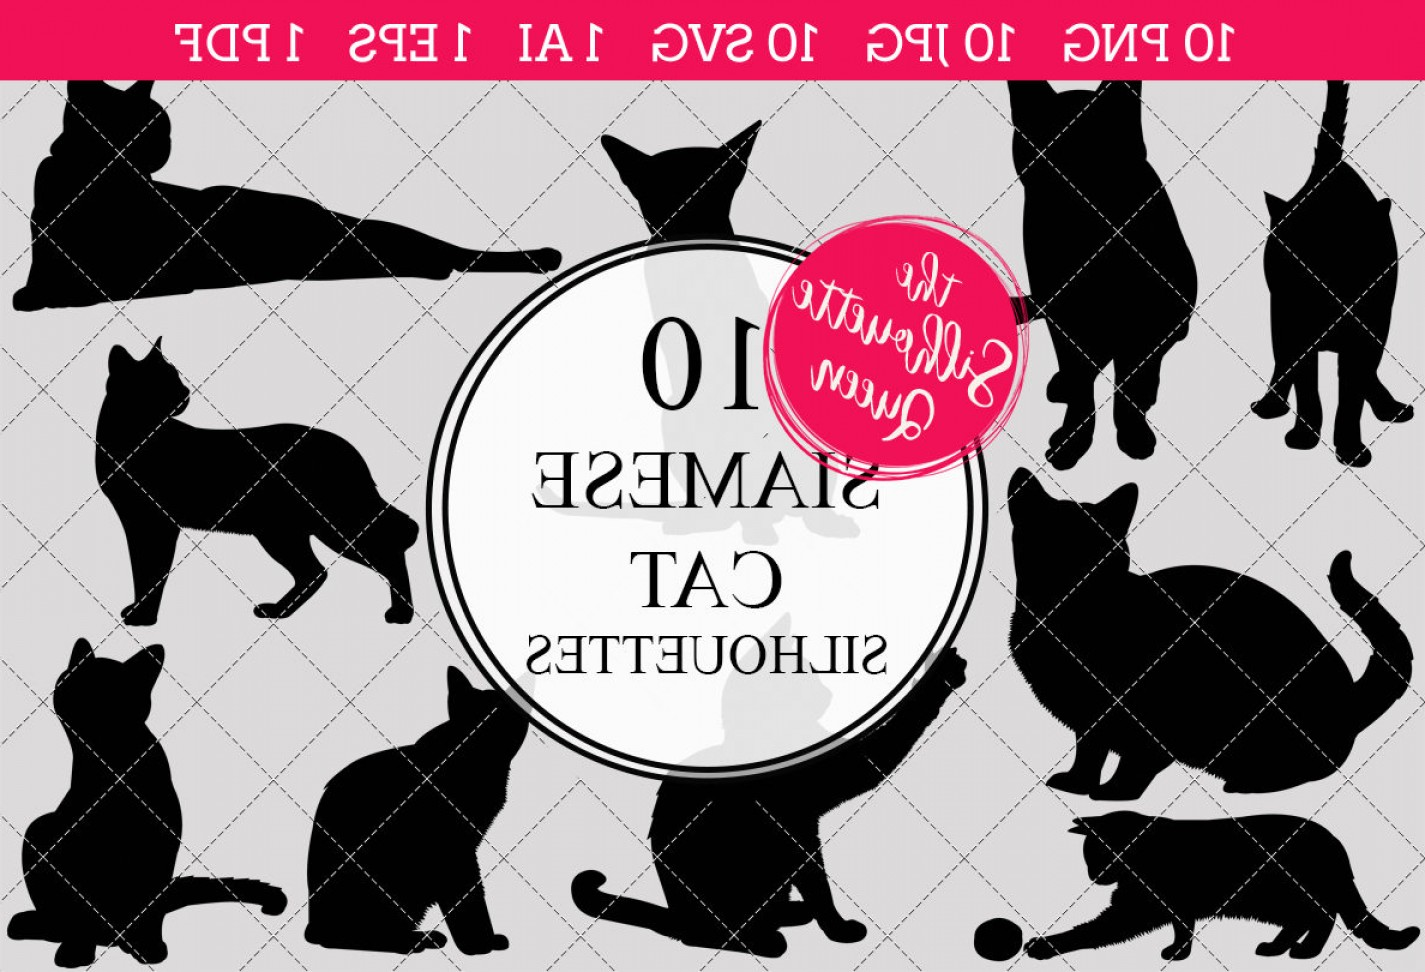 Siamese Cat Vector Transparent Background: Siamese Cat Silhouettes Clipart Clip Artai Eps Svgs Jpgs Pngs Pdf Siamese Cat Clip Art Clipart Vectors Commercial Personal Use